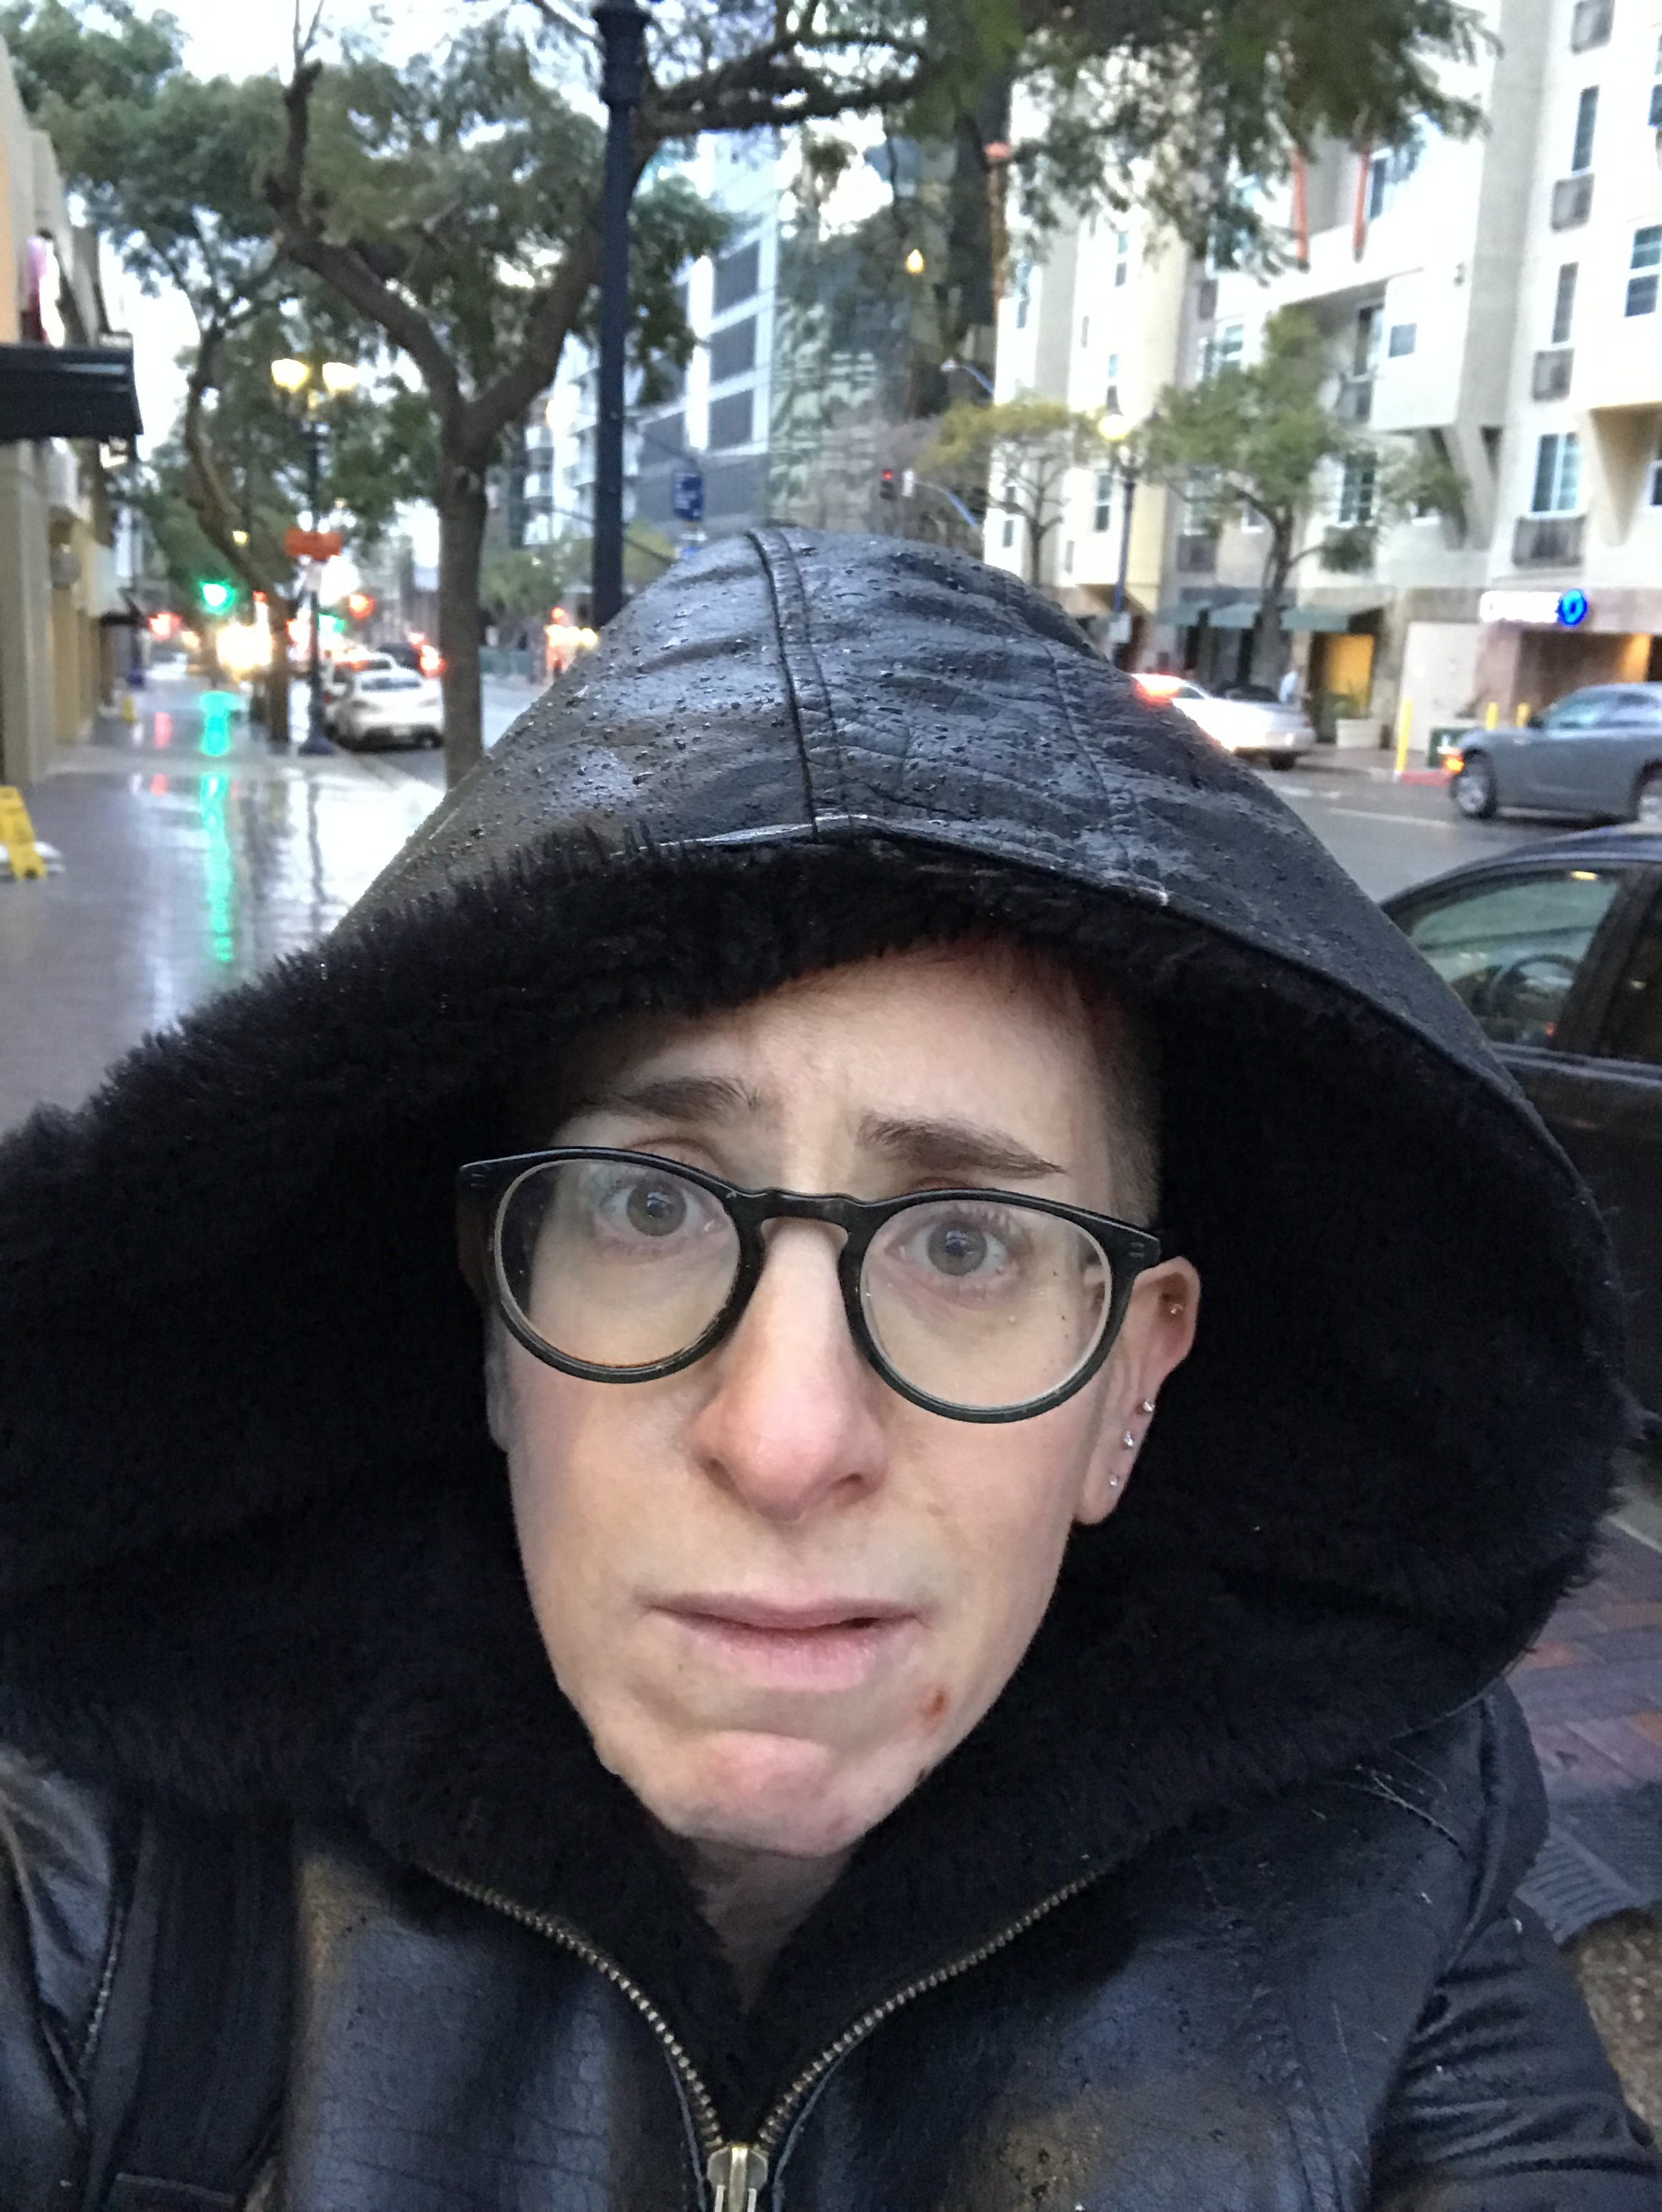 This is me walking in San Diego WHERE IT WAS RAINING most of the week. That's right it was hailing and raining in San Diego! Thanks Universe!! I just wanted some light, man….